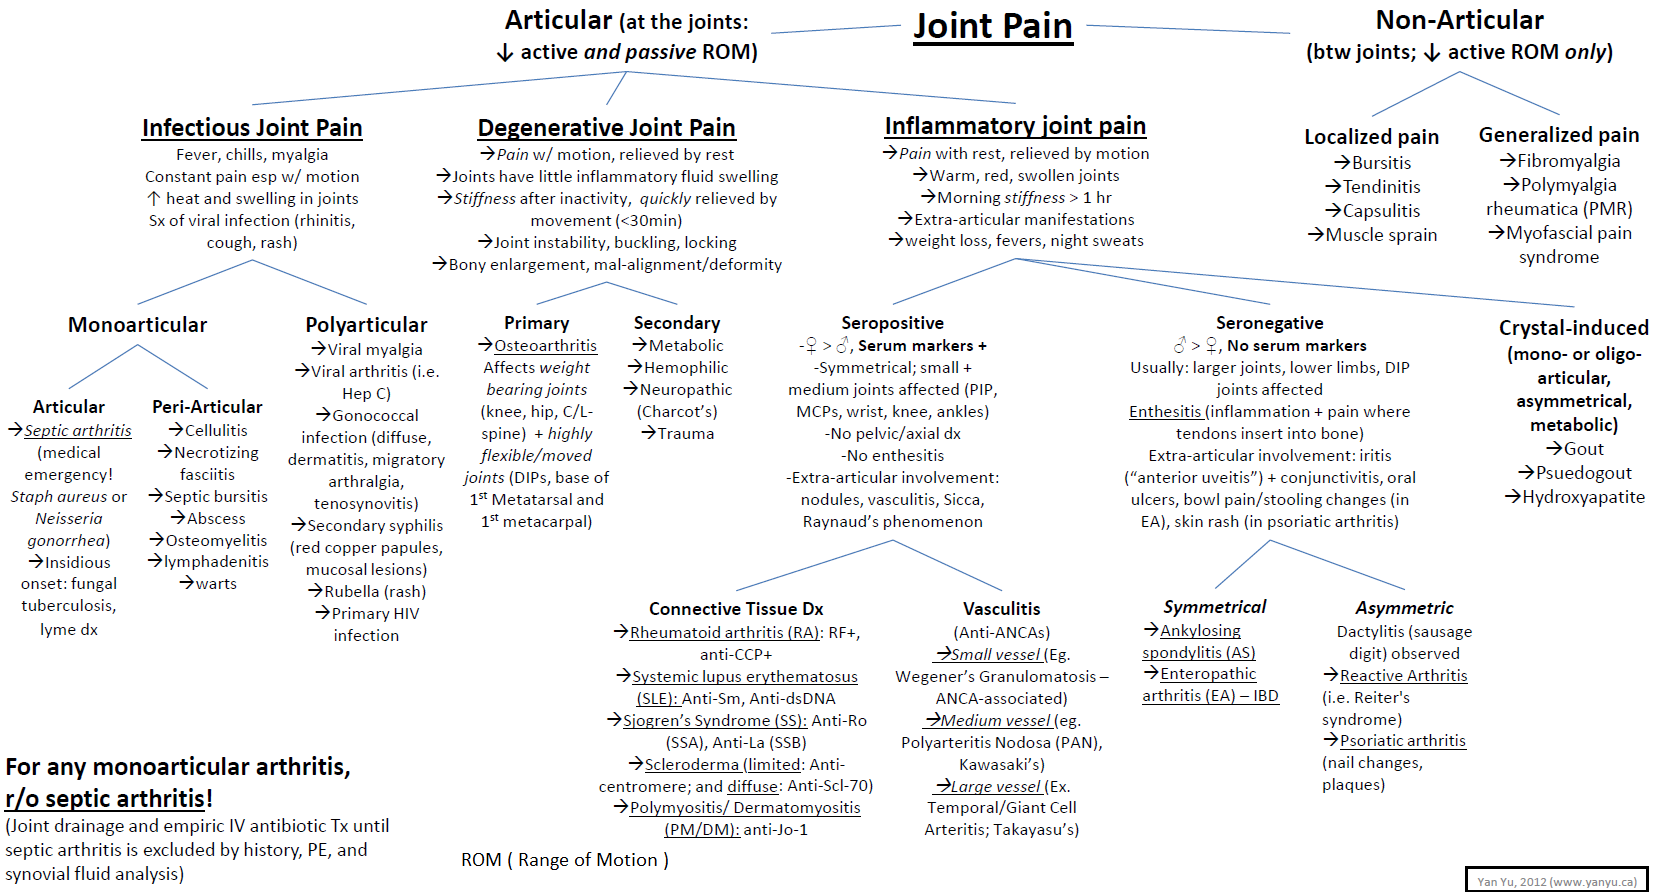 Joint Pain - Differential Diagnosis Articular: Infectious, Degenerative, Inflammatory Non-articular: Localized, General  #Joint #Pain #Differential #Diagnosis #MSK #algorithm